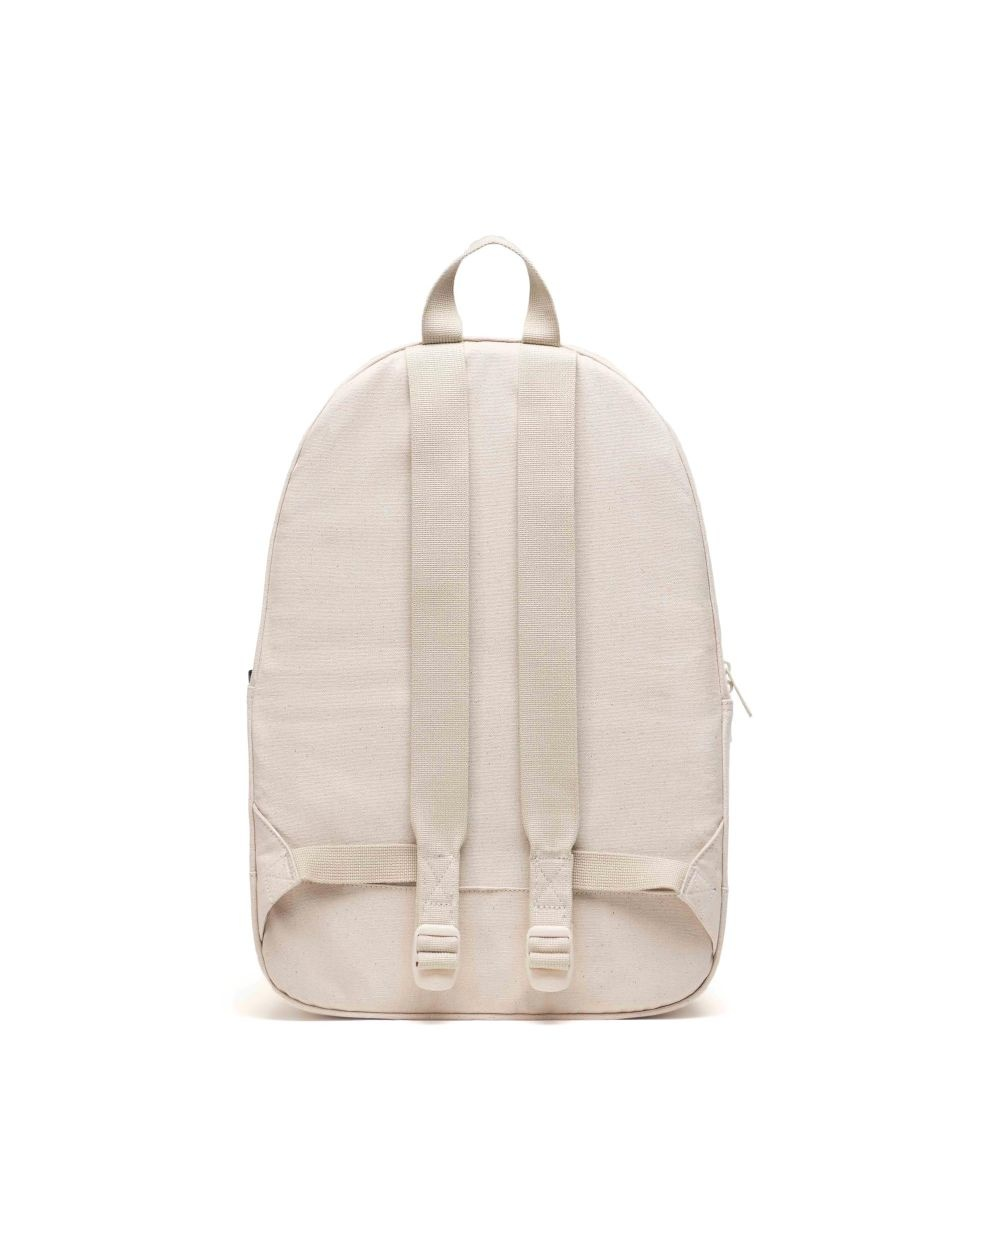 Cotton Casuals I Daypack natural-4